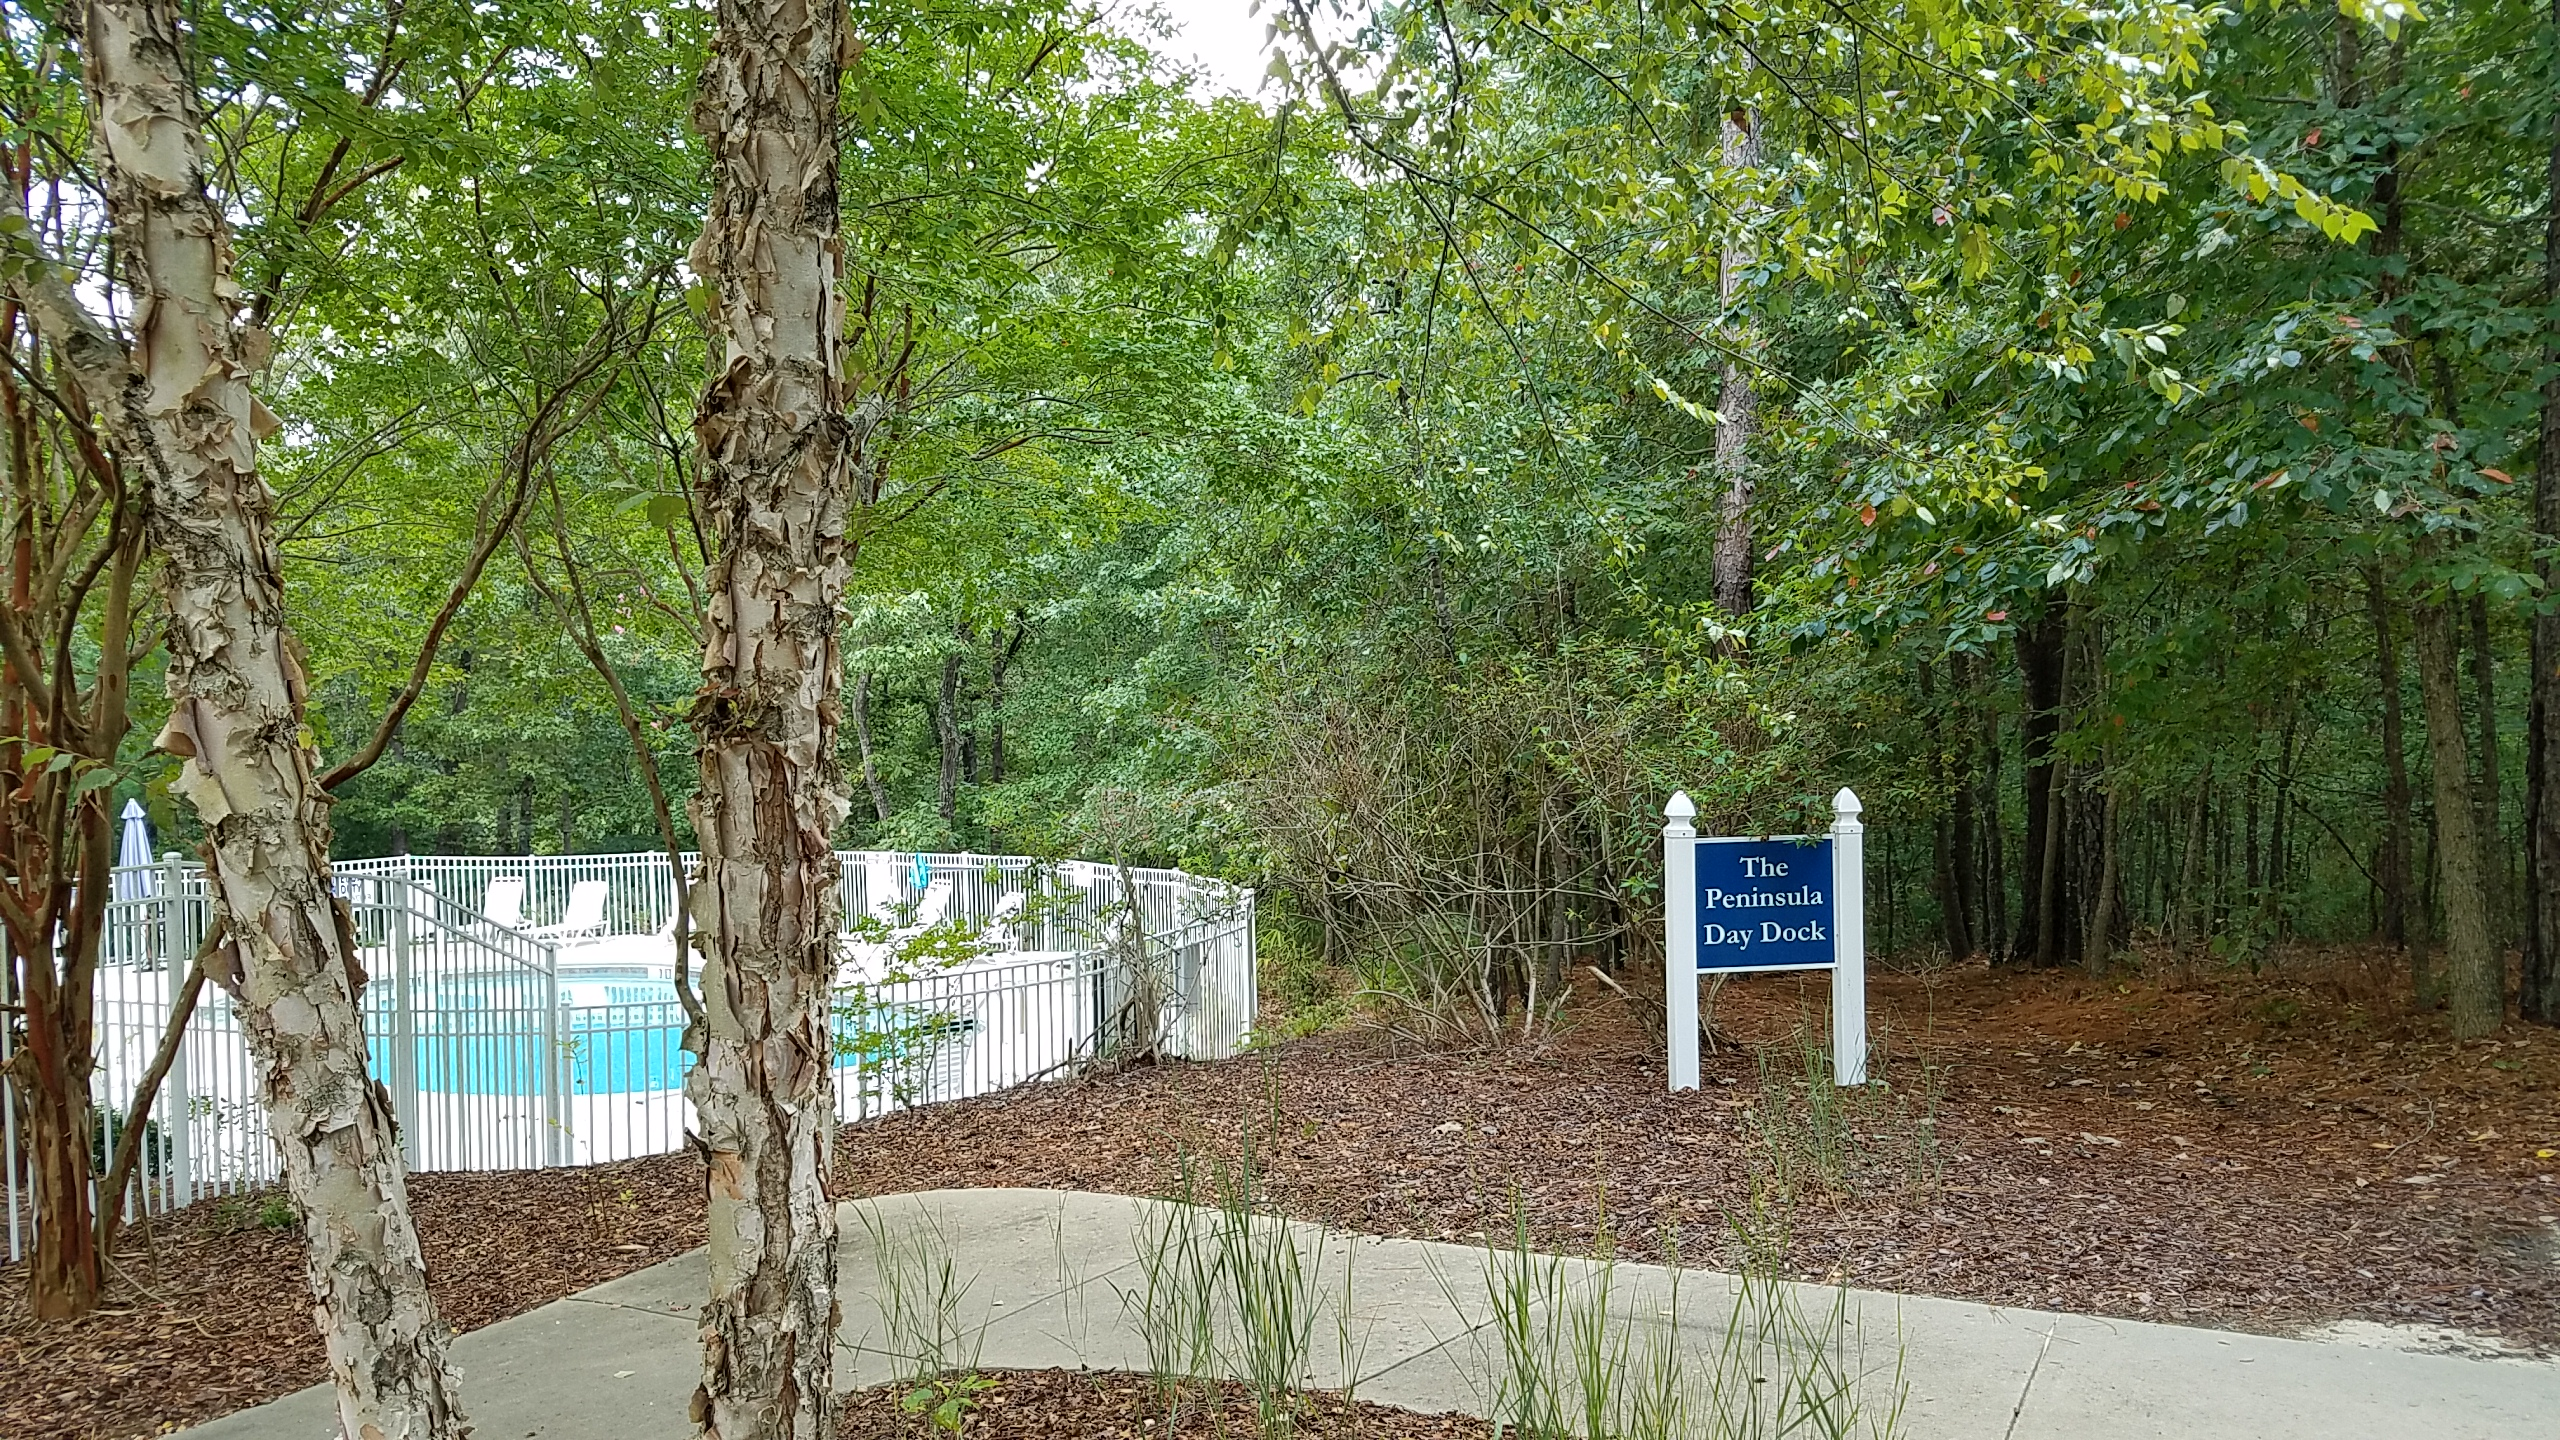 Lot for Sale at 30 Schooner Court Columbia SC 29229 Gated The Peninsula at Lake Carolina https://www.homes-columbia.com/30-schooner-court